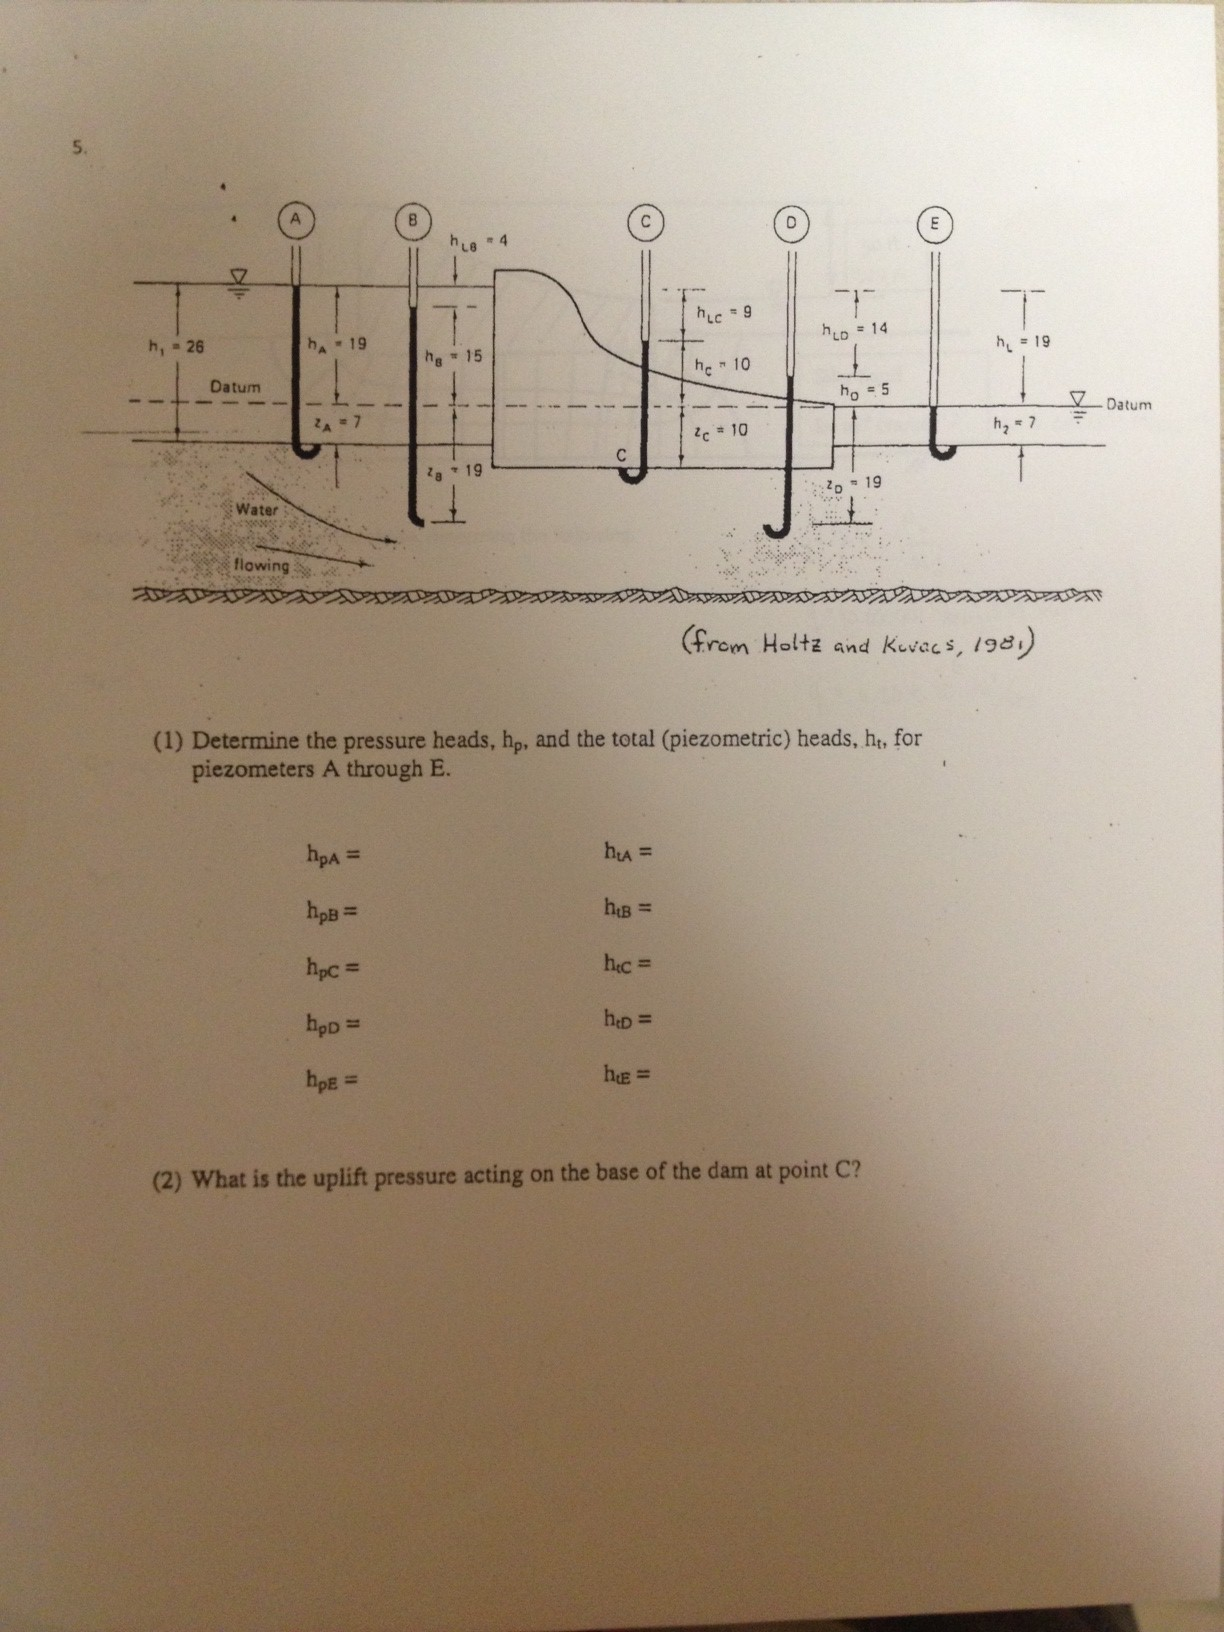 Determine the pressure heads, hp, and the total